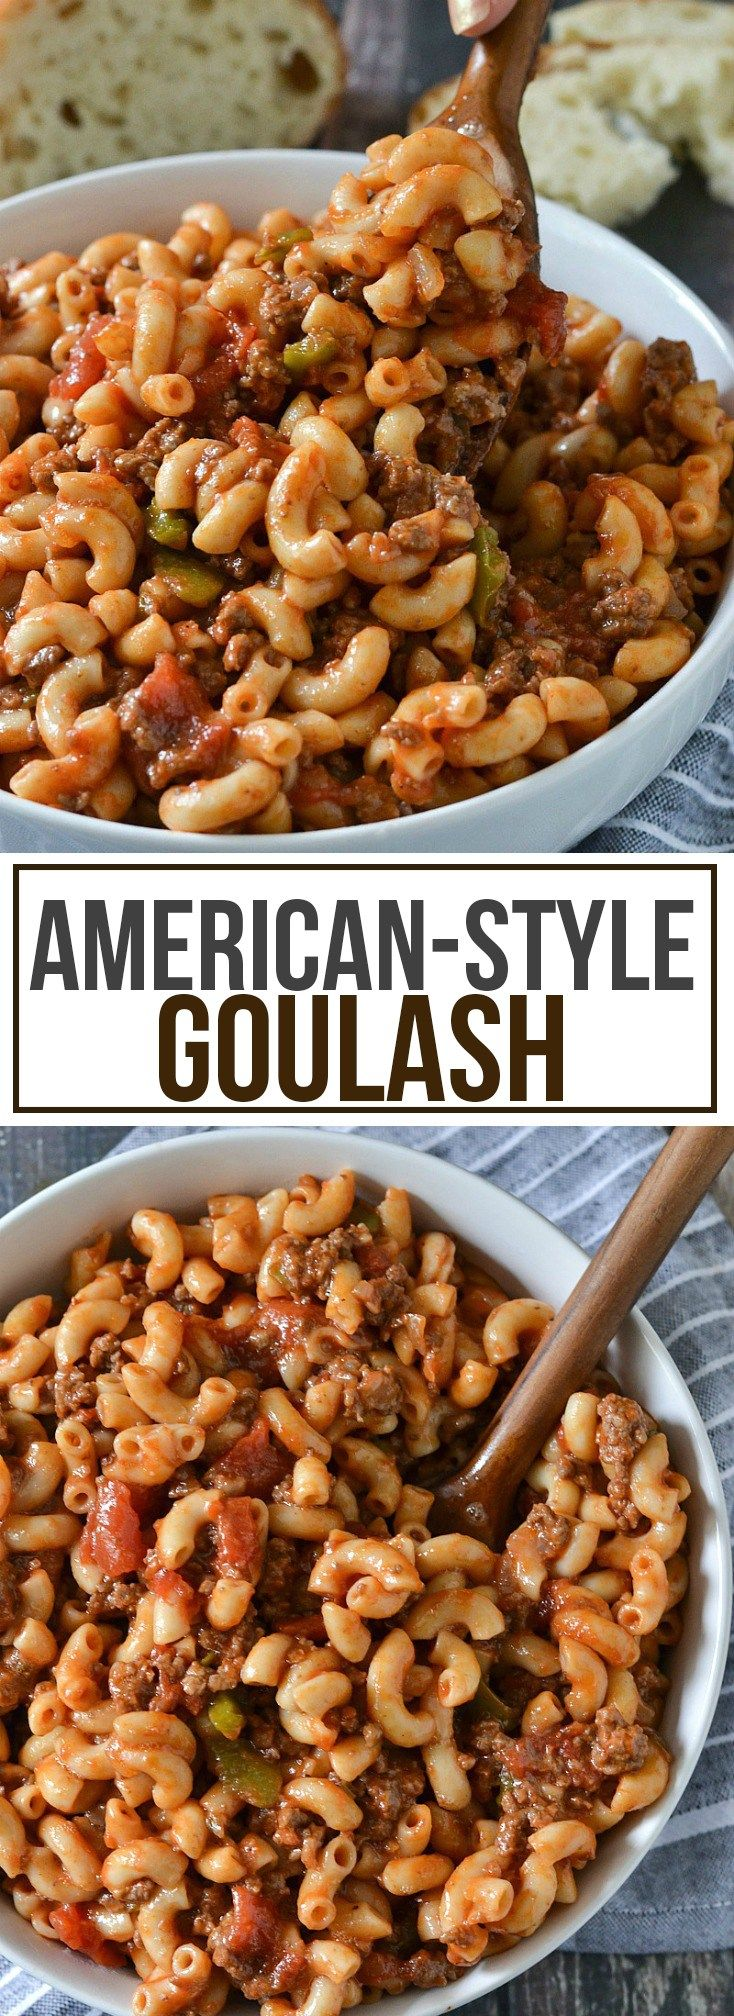 Classic American-Style Goulash                                                                                                                                                                                 More